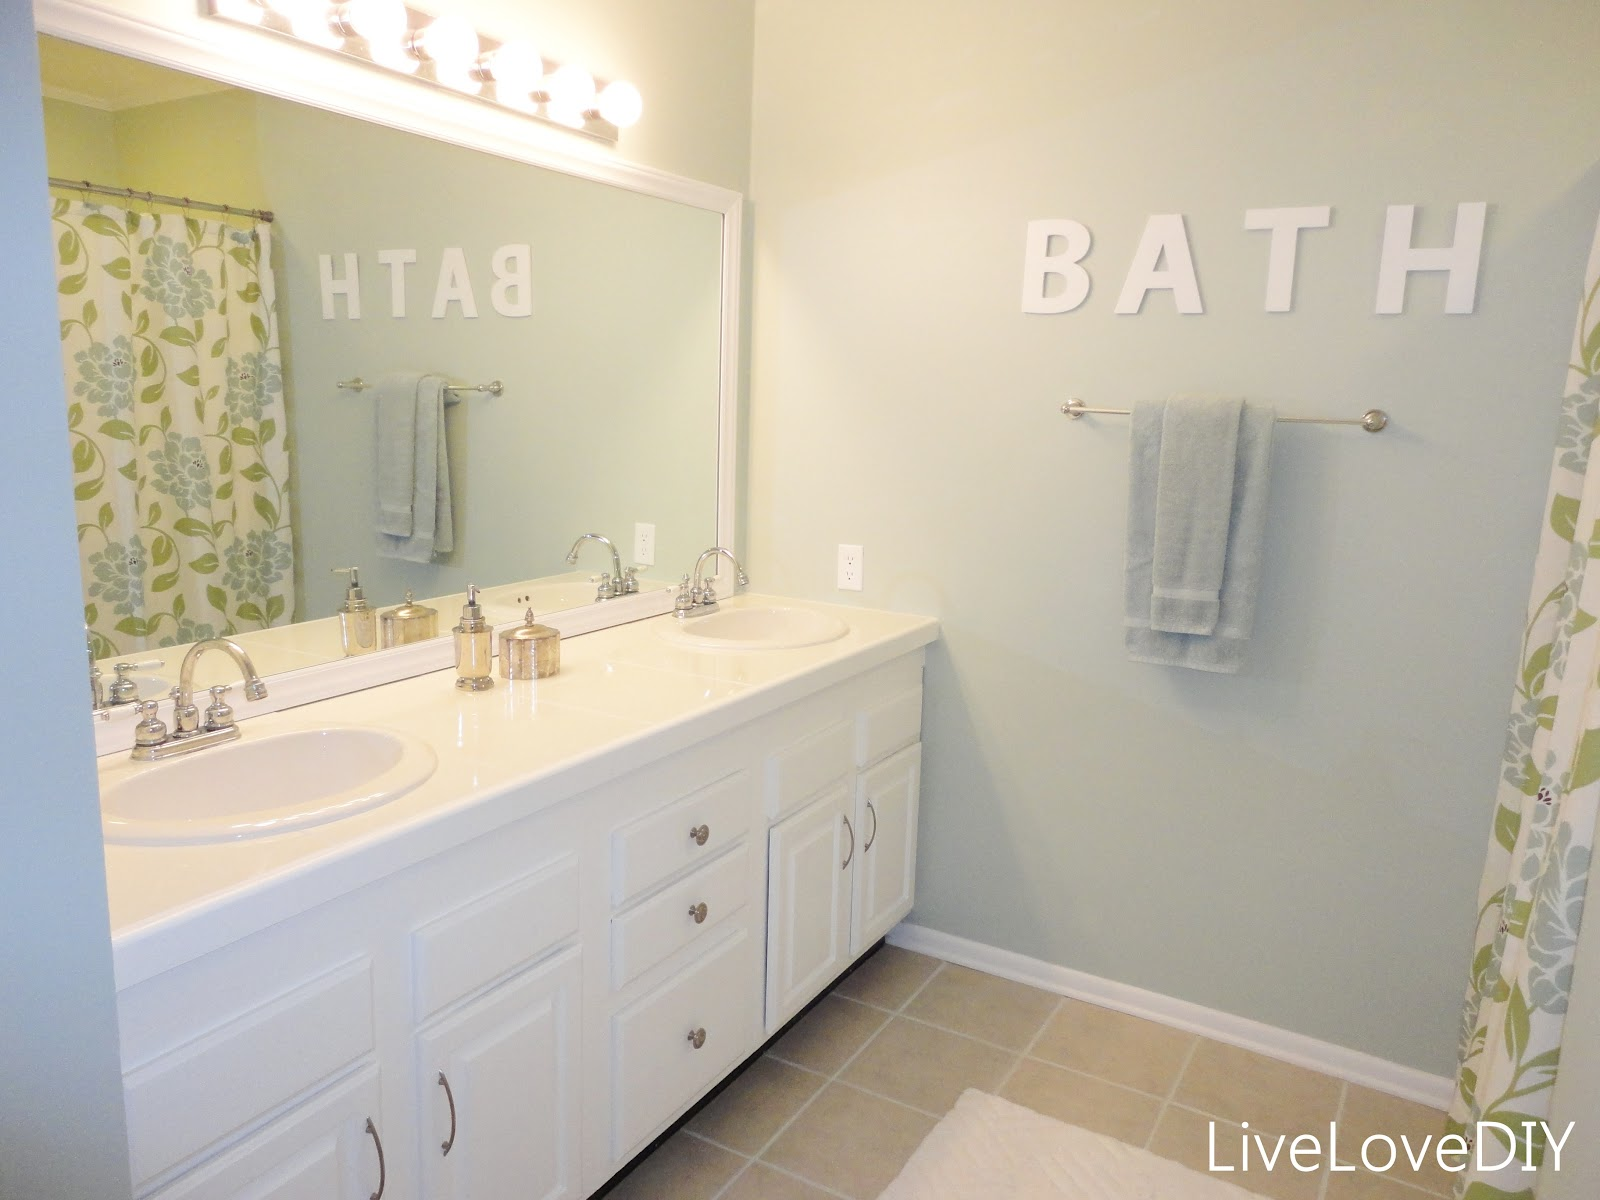 Livelovediy easy diy ideas for updating your bathroom for Bathroom ideas paint colors